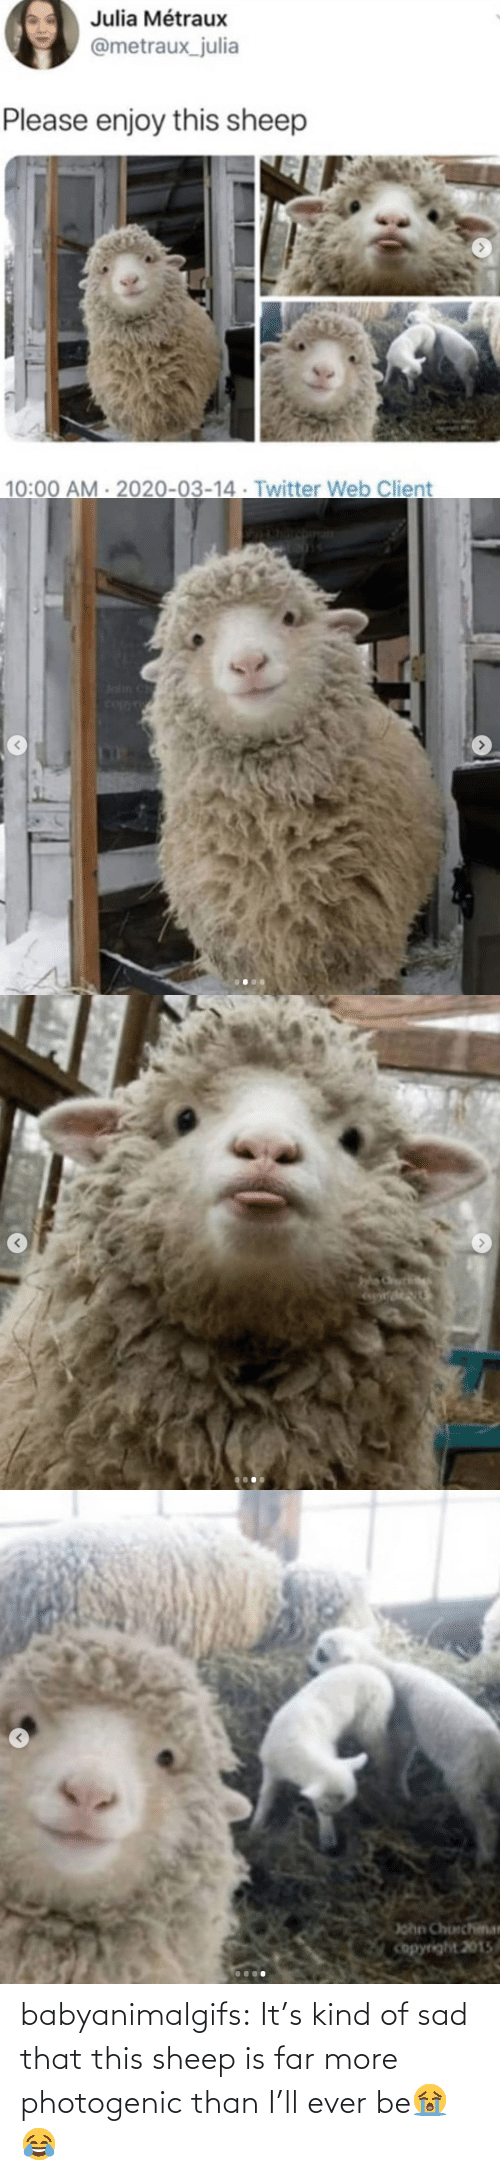 Sad: babyanimalgifs:  It's kind of sad that this sheep is far more photogenic than I'll ever be😭😂